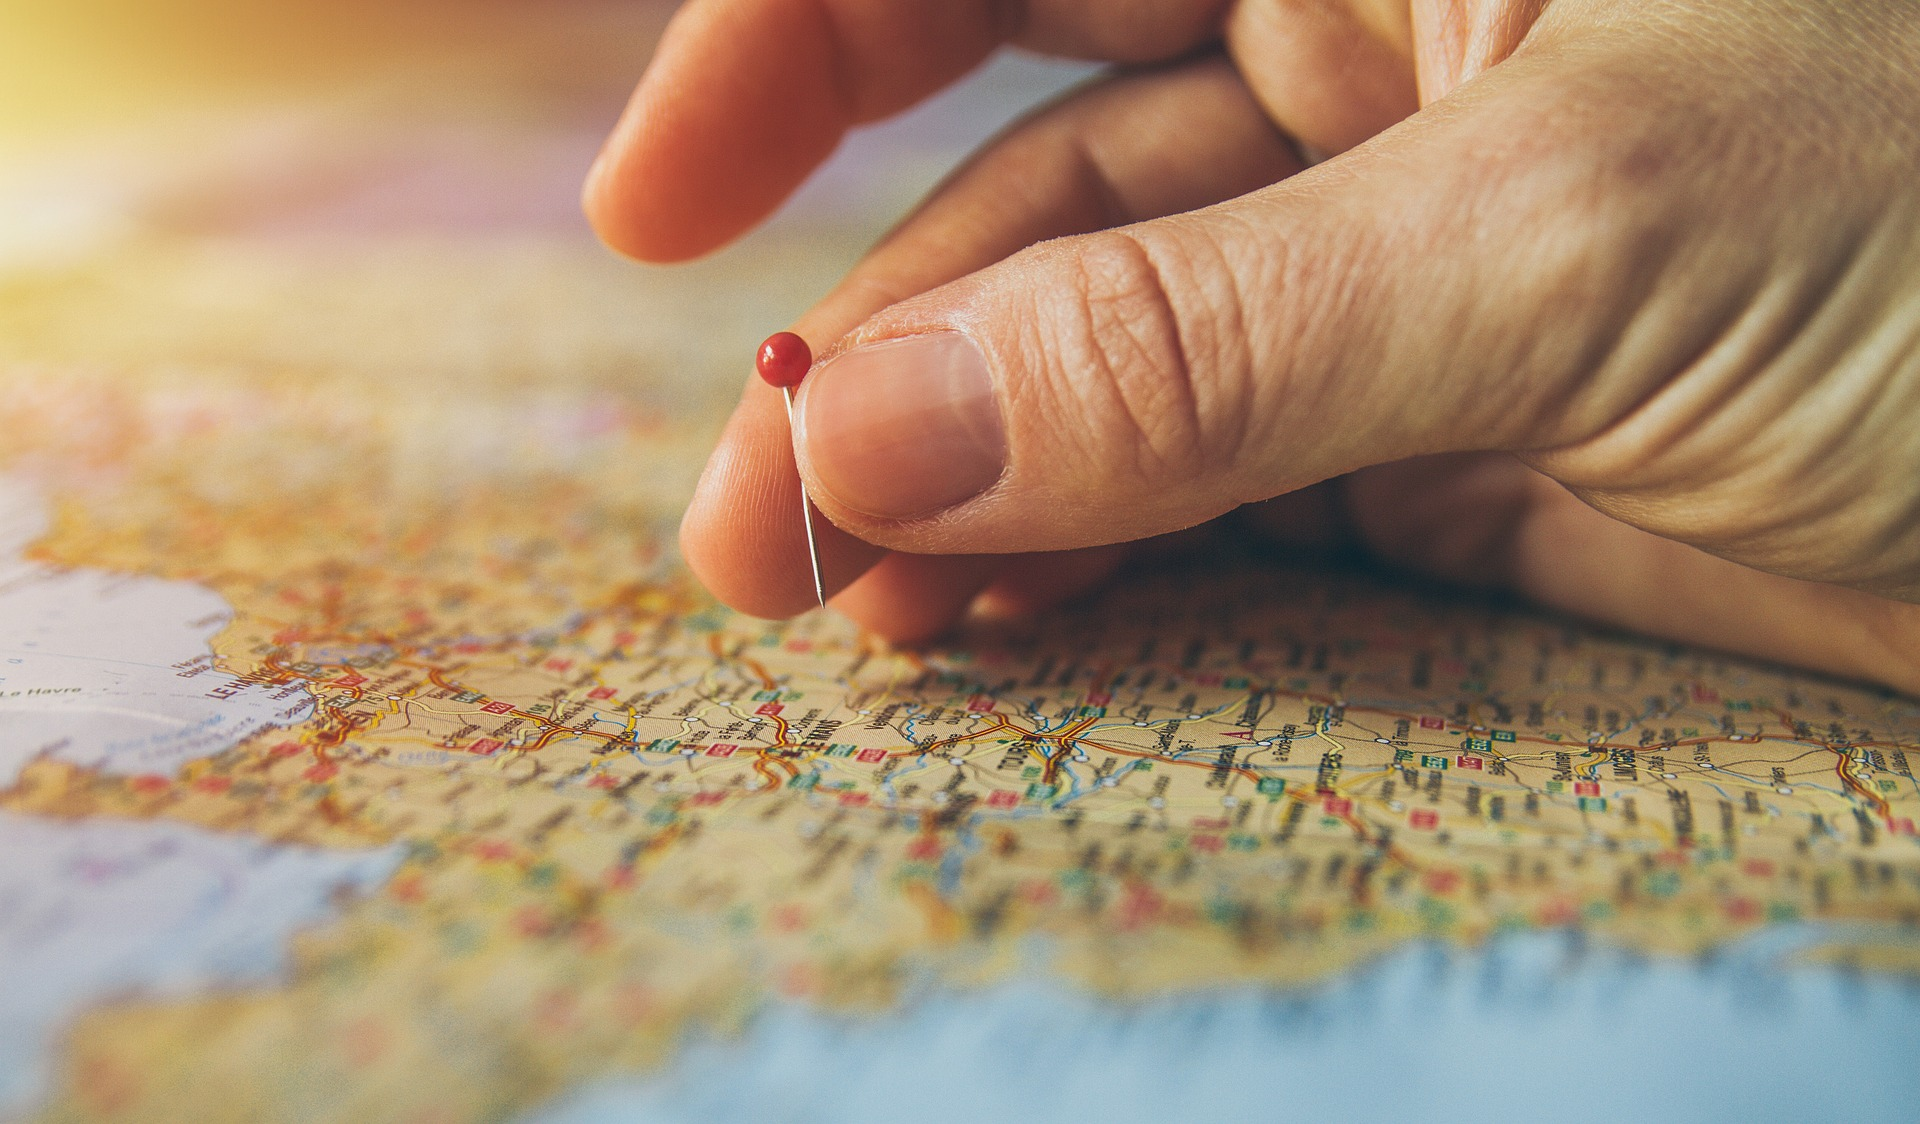 fingers holding a pin map of France